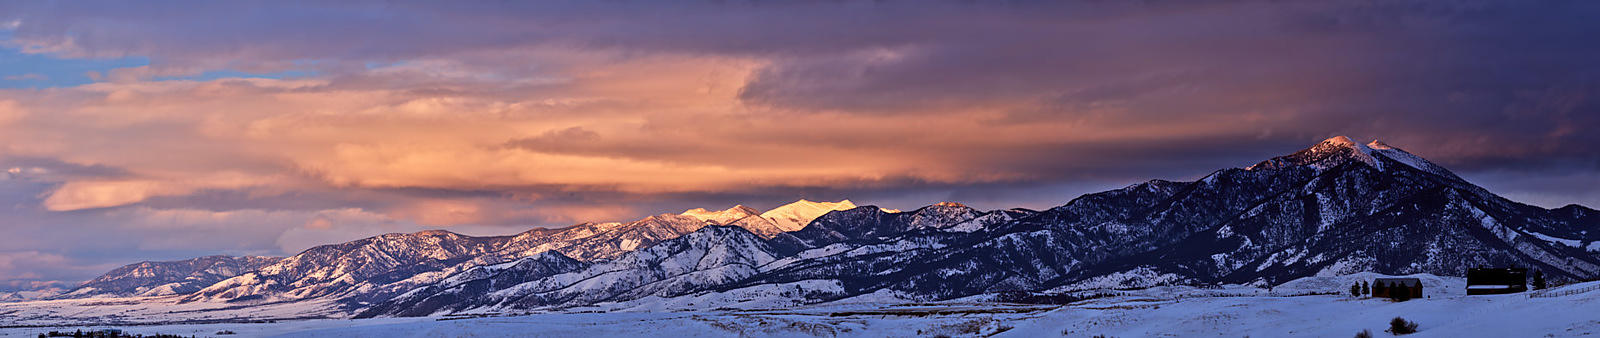 Bozeman Winter Sunset